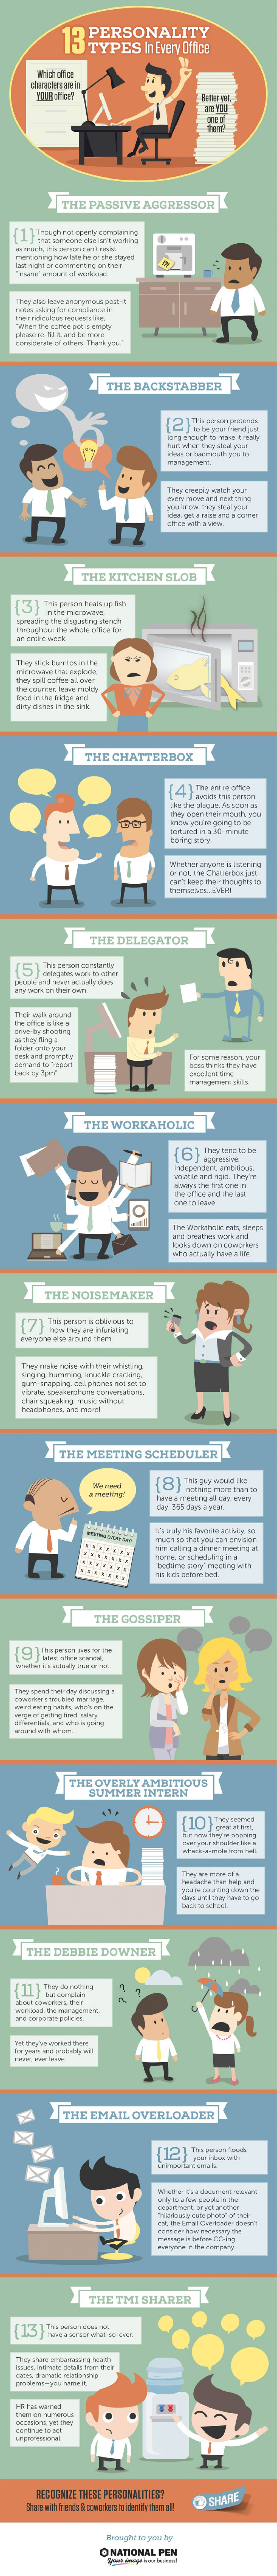 annoying coworkers infographic the muse infographic courtesy of national pen photo of w whispering courtesy of shutterstock